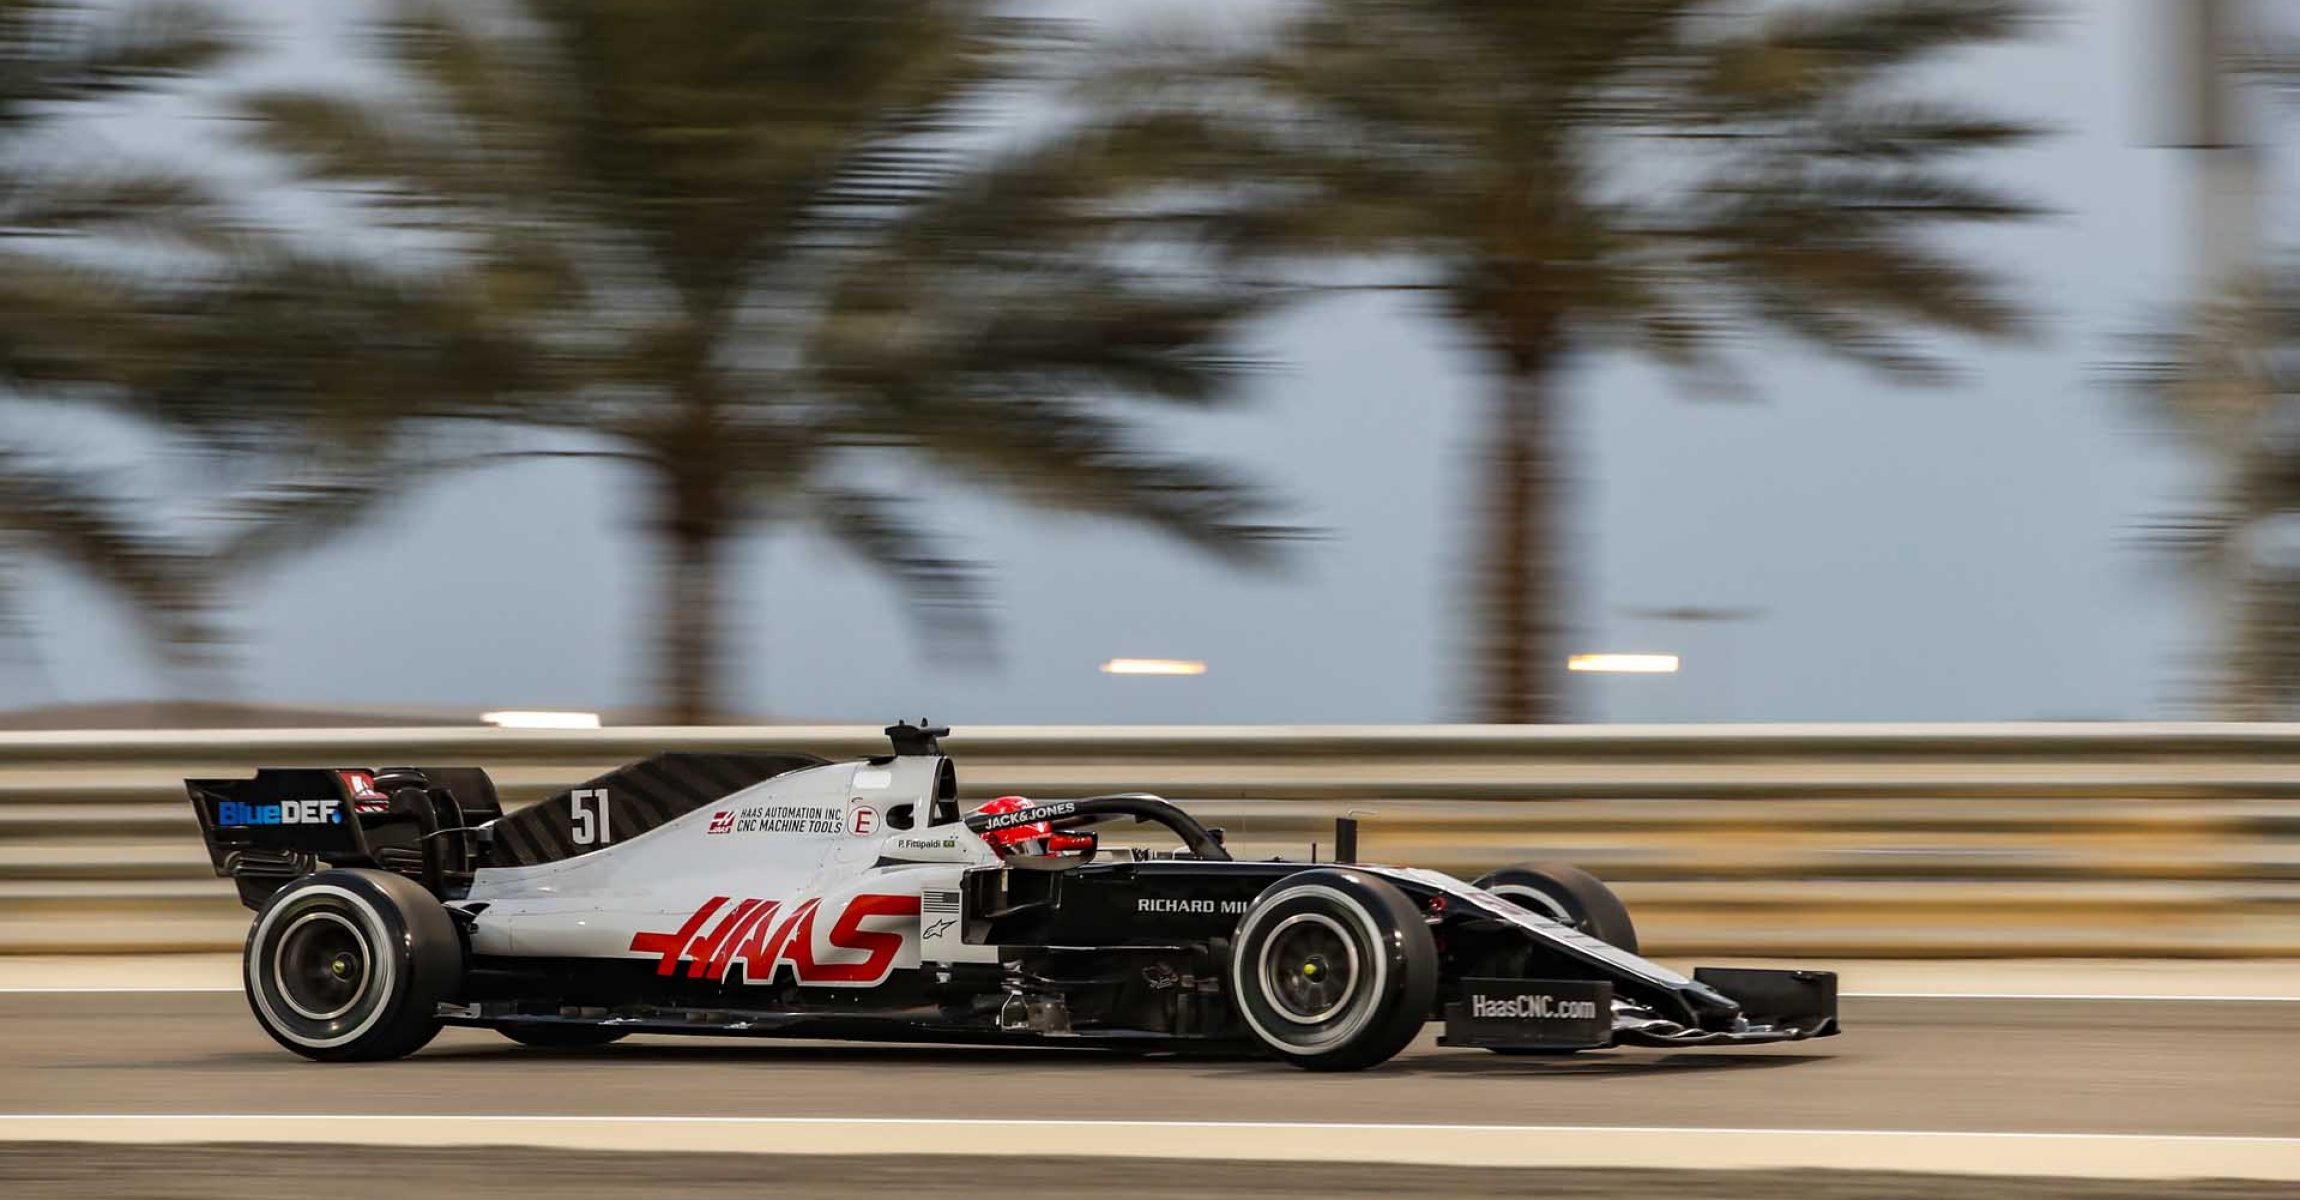 BAHRAIN INTERNATIONAL CIRCUIT, BAHRAIN - DECEMBER 04: Pietro Fittipaldi, Haas F1 Haas VF-20 during the Sakhir GP at Bahrain International Circuit on Friday December 04, 2020 in Sakhir, Bahrain. (Photo by Zak Mauger / LAT Images)